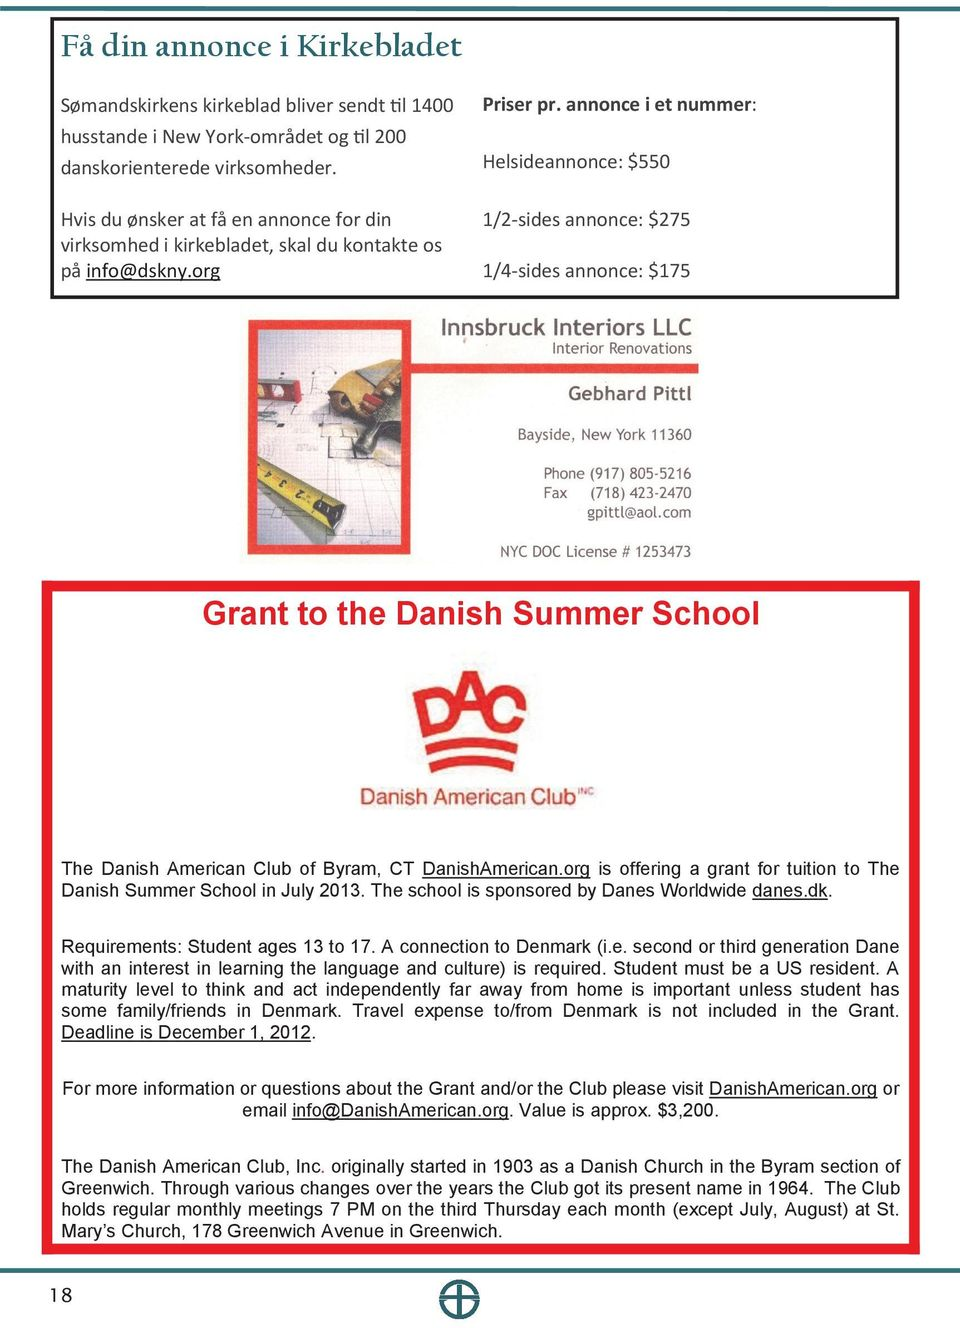 annonce i et nummer: Helsideannonce: $550 1/2-sides annonce: $275 1/4-sides annonce: $175 Grant to the Danish Summer School The Danish American Club of Byram, CT DanishAmerican.